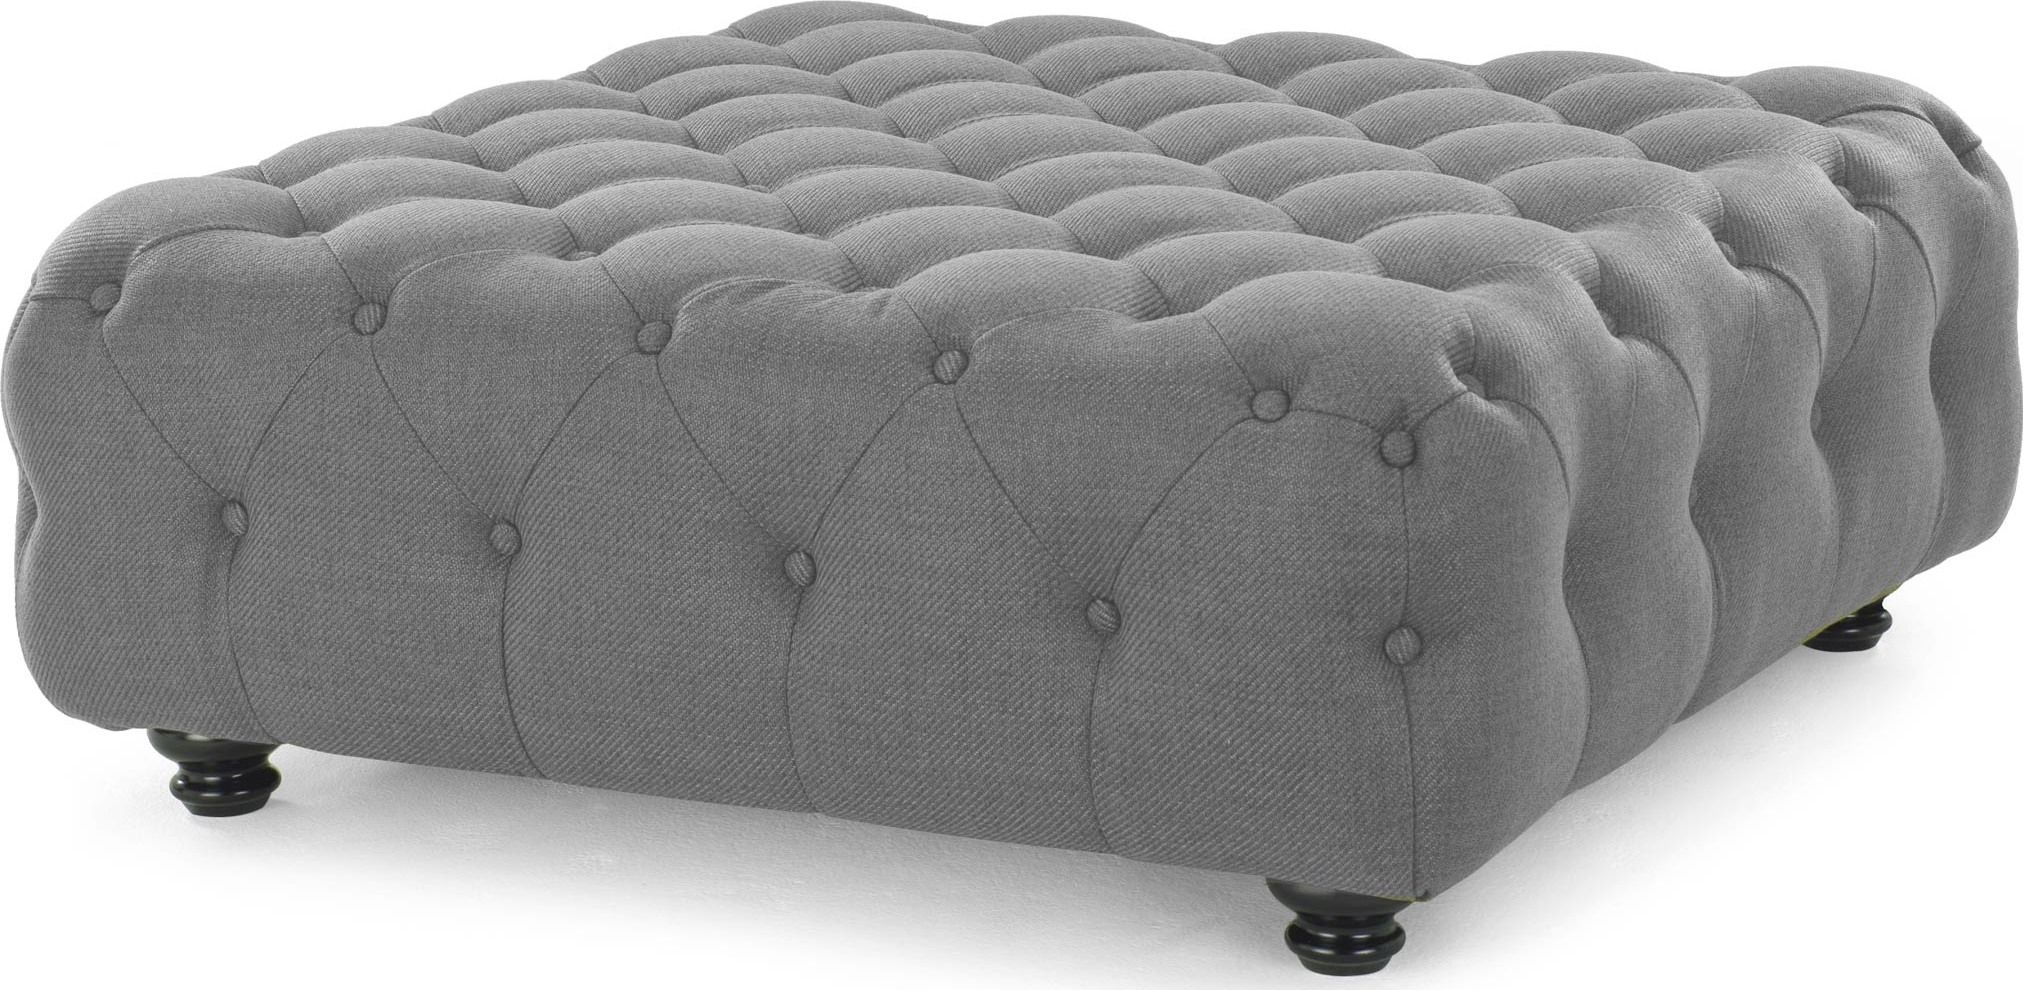 made large ottoman pearl grey express delivery upholstered